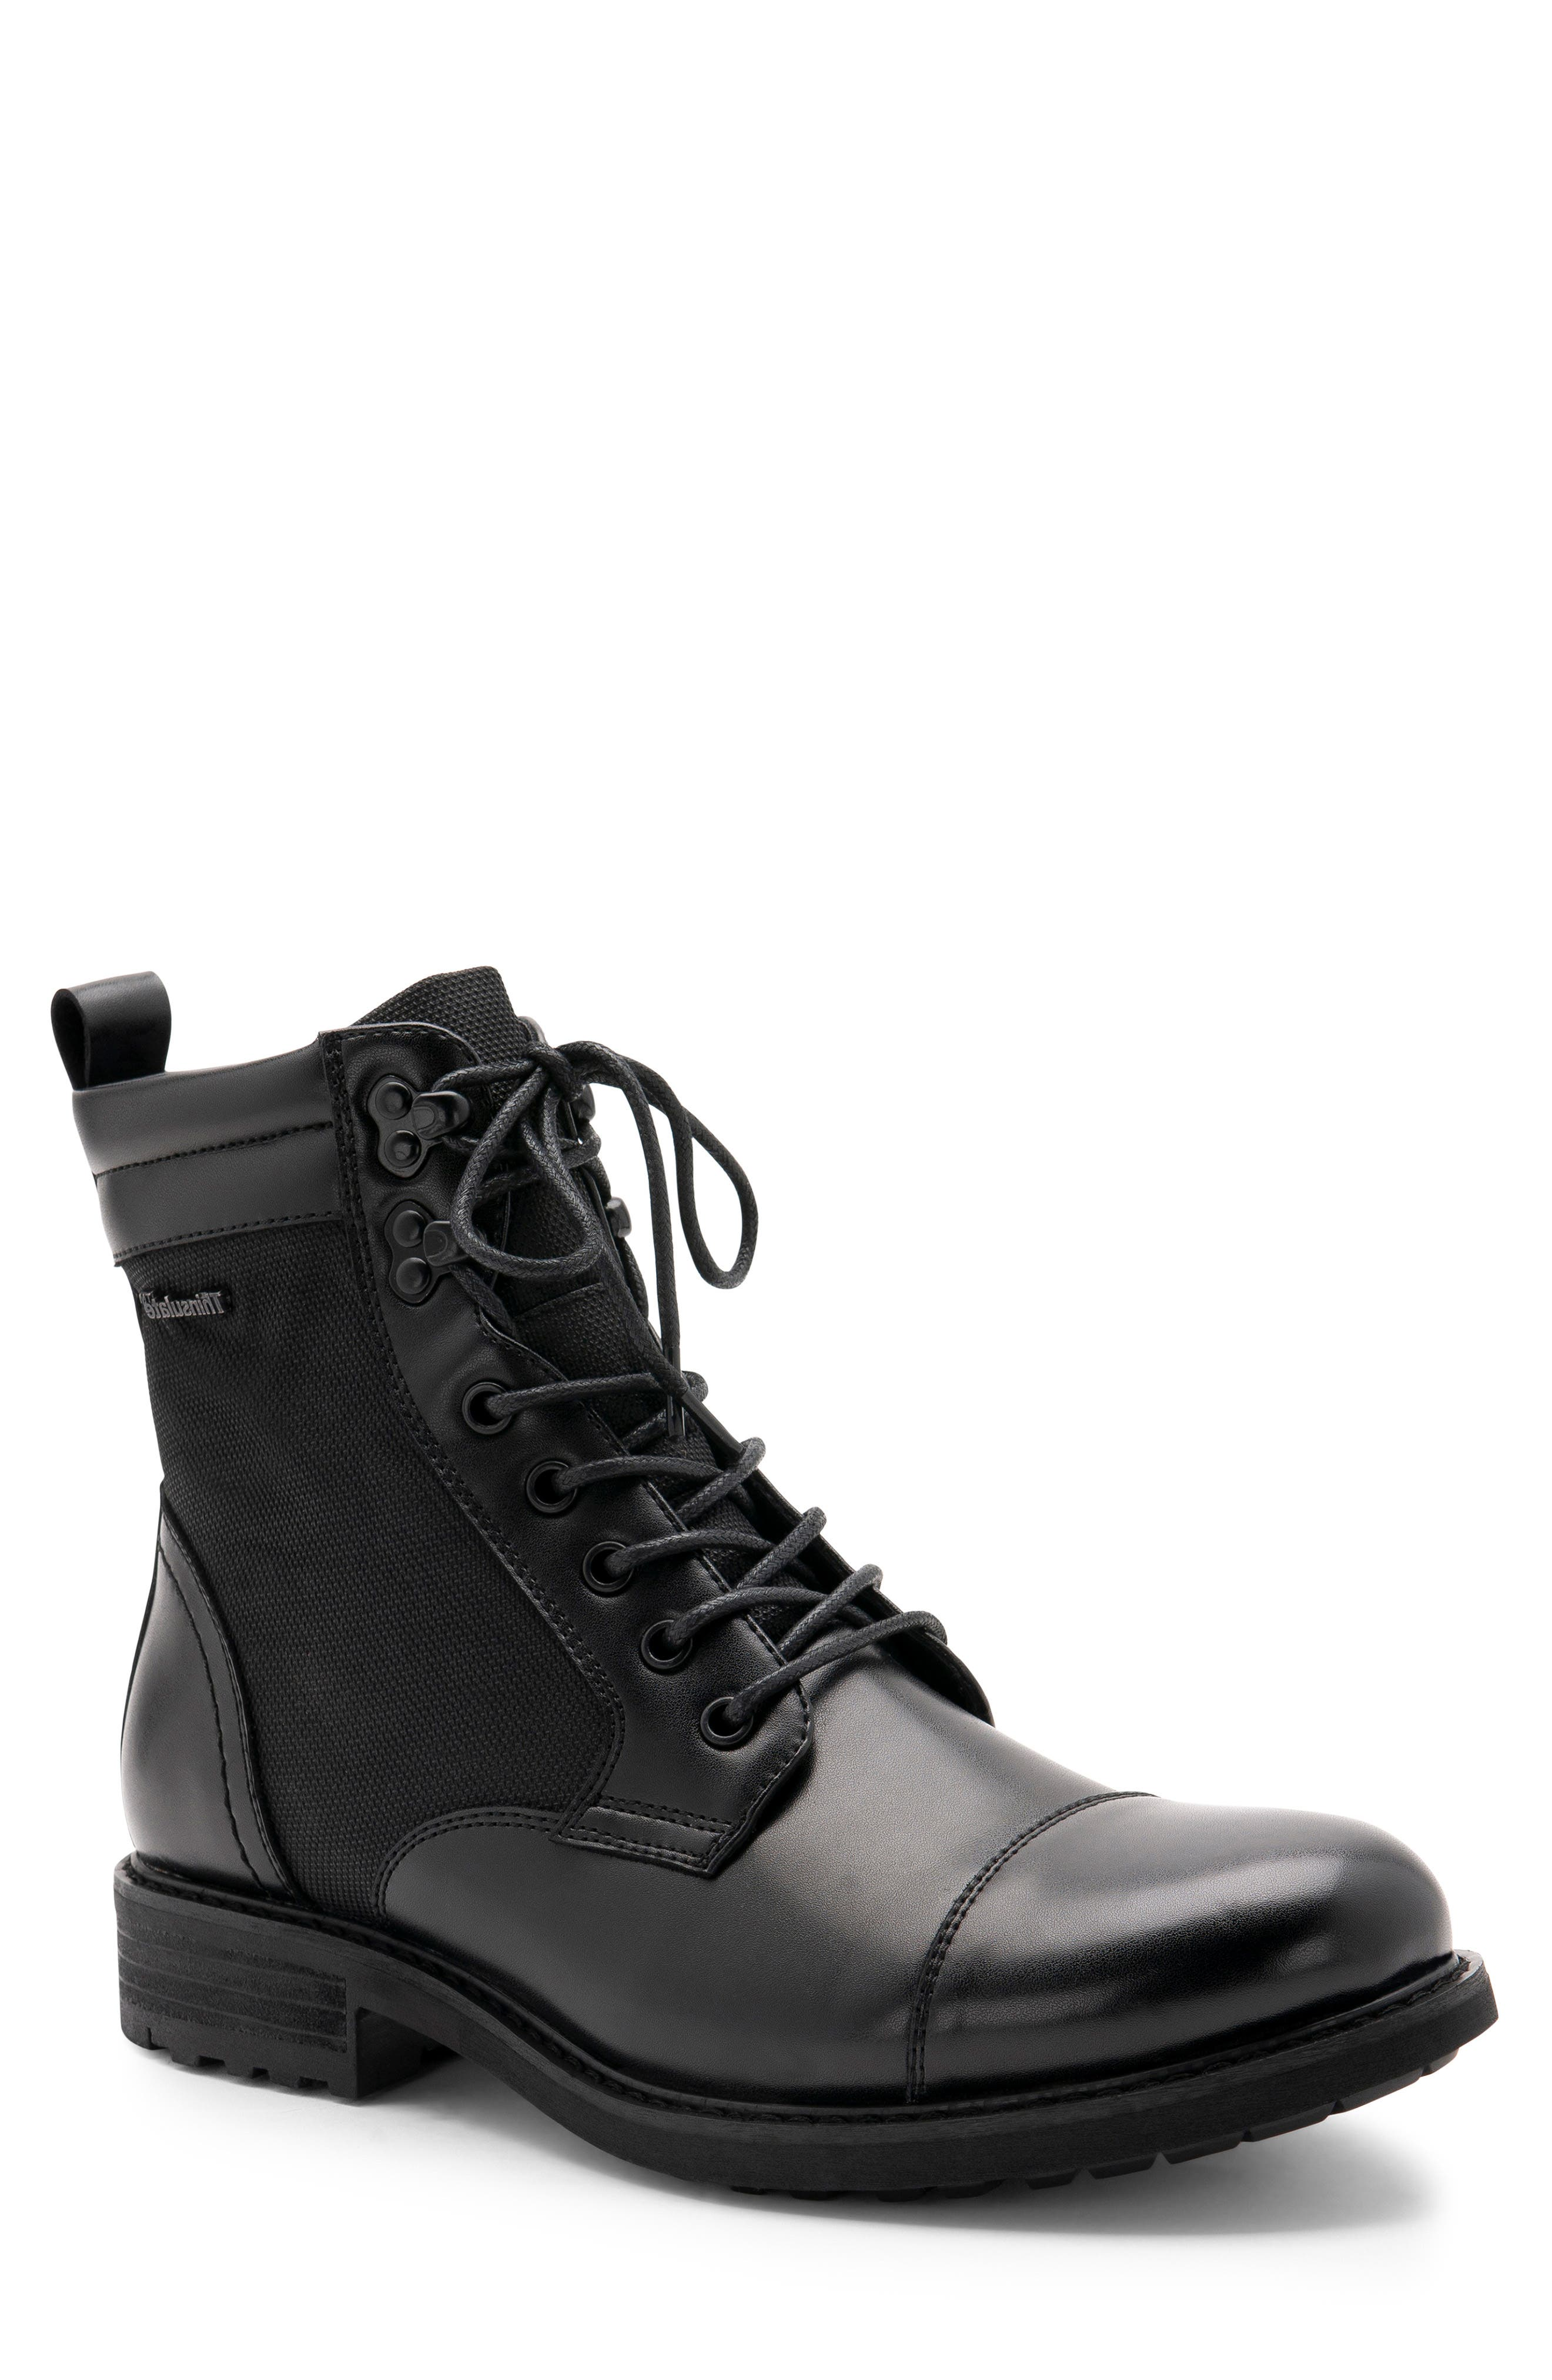 Paxton Waterproof Cap Toe Boot,                             Main thumbnail 1, color,                             BLACK LEATHER